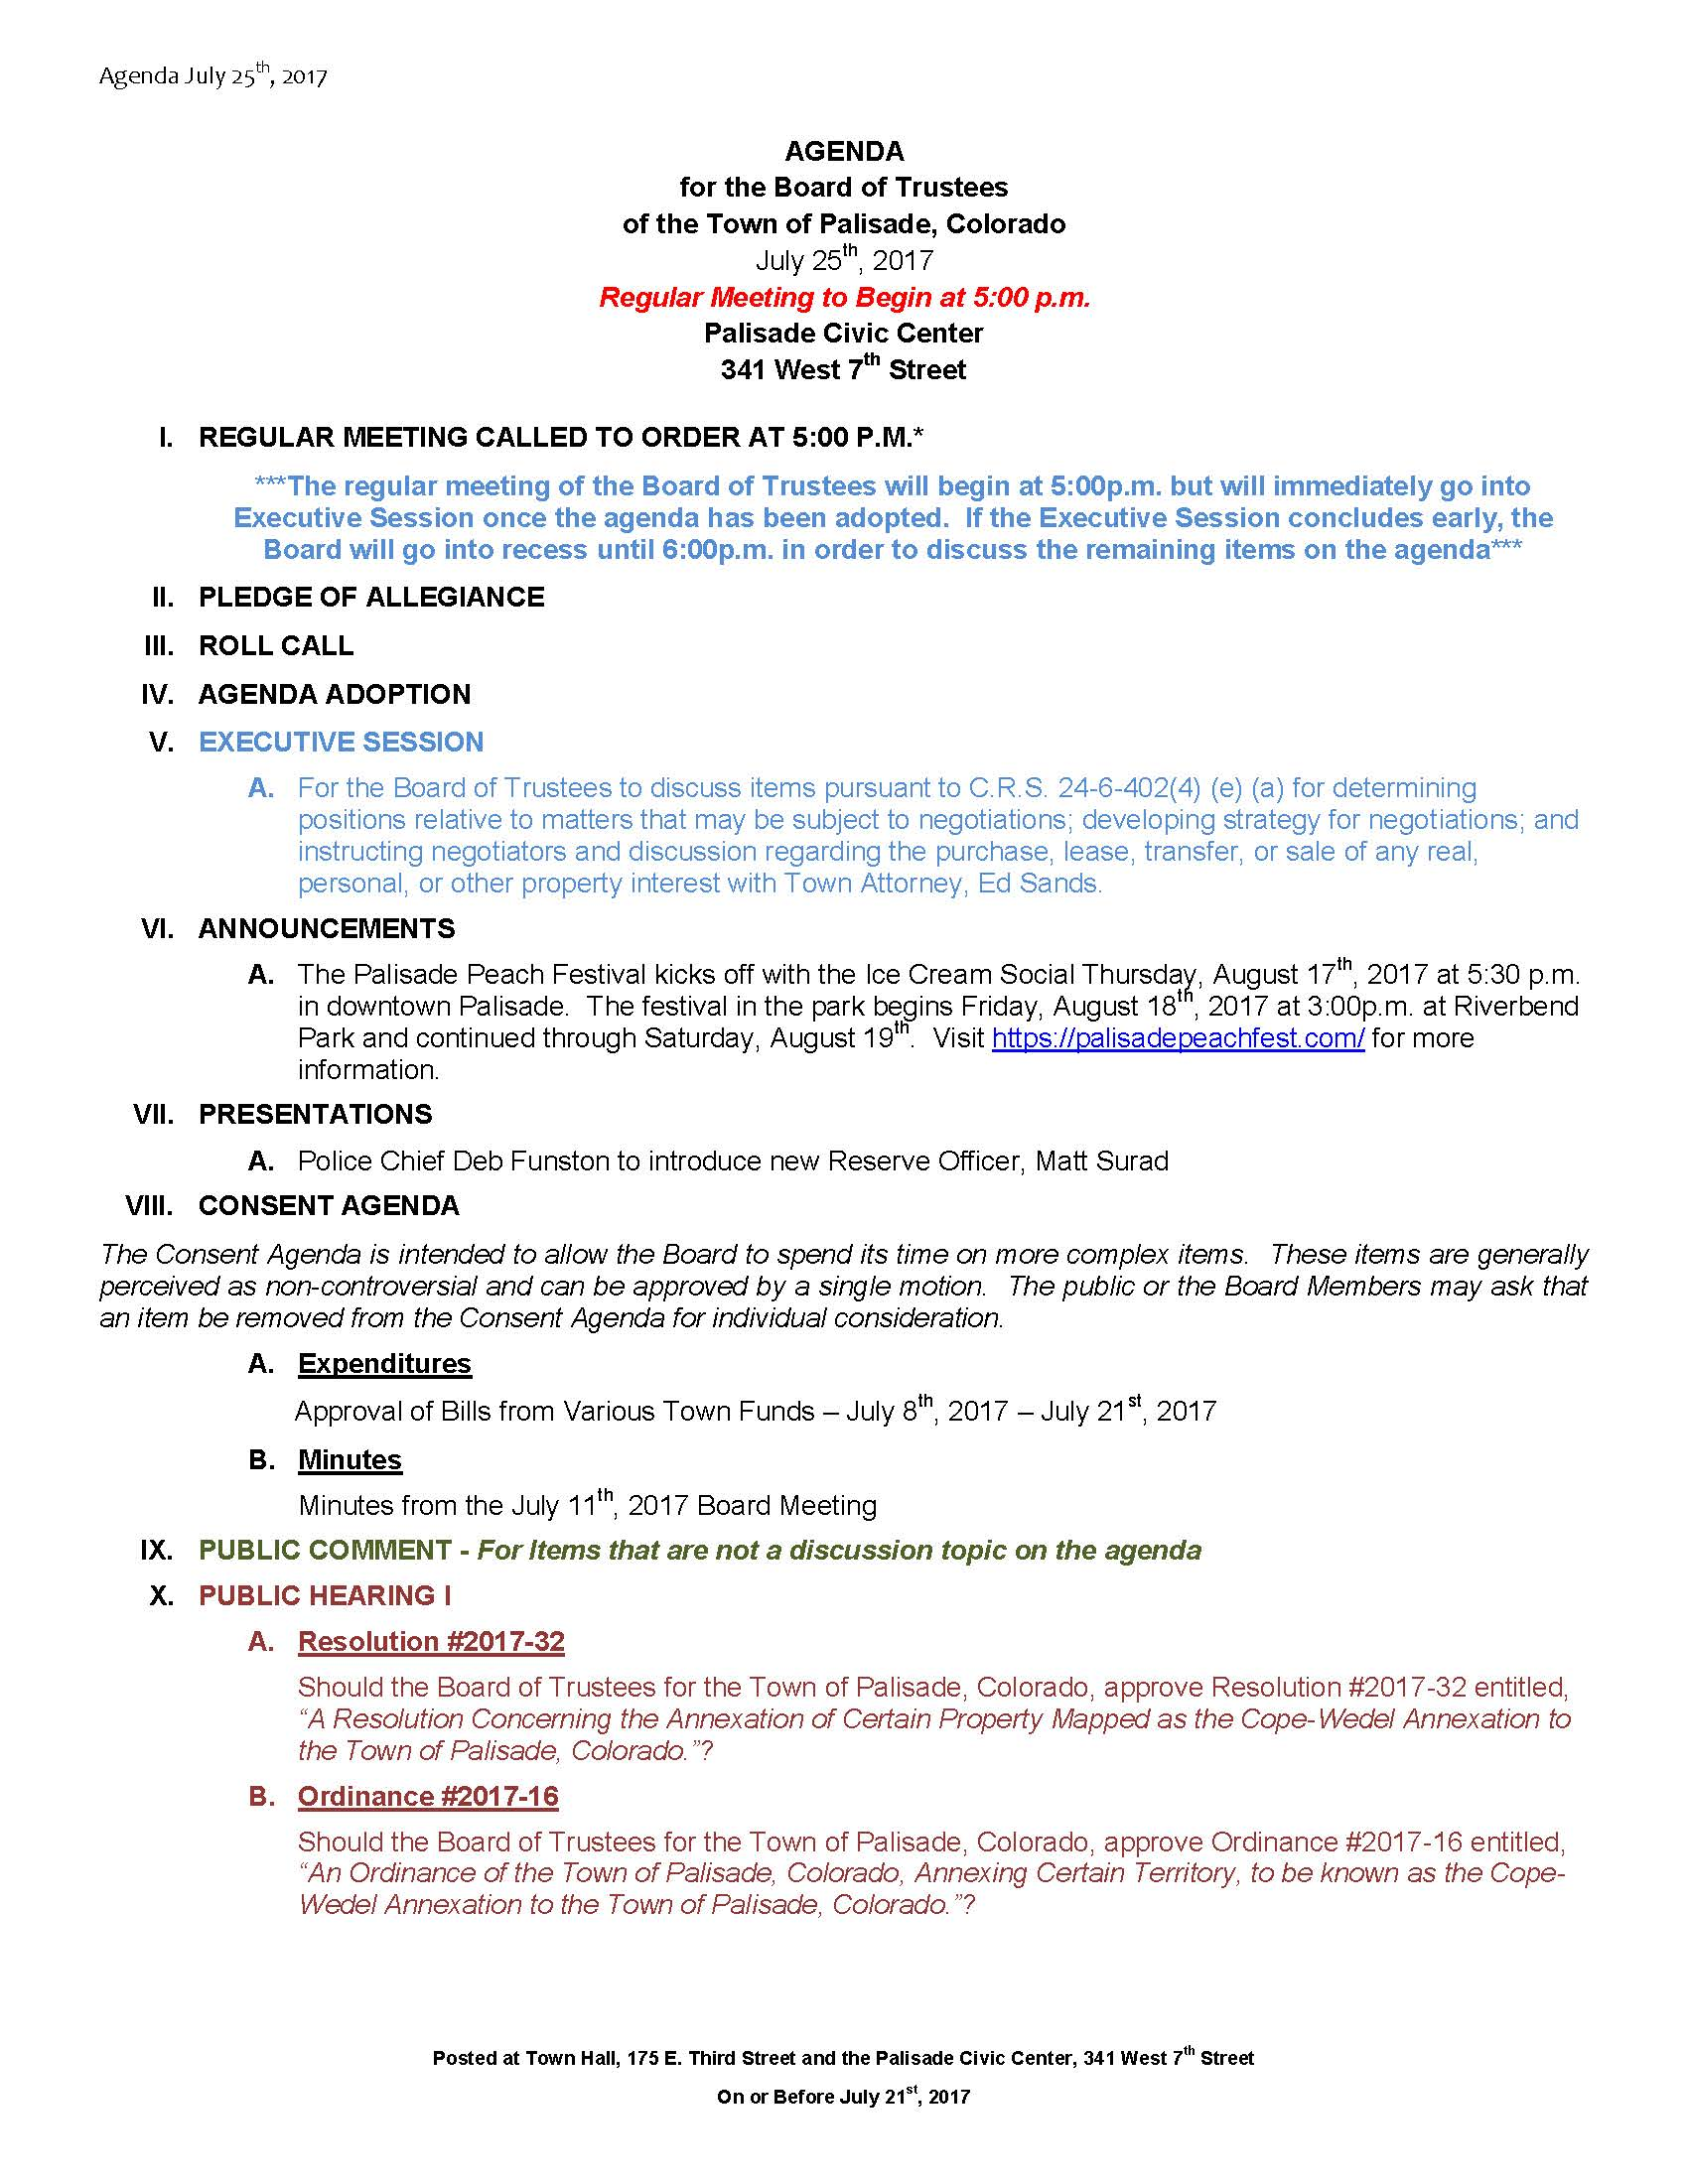 July 25th 2017 Board Meeting Agenda Page 1